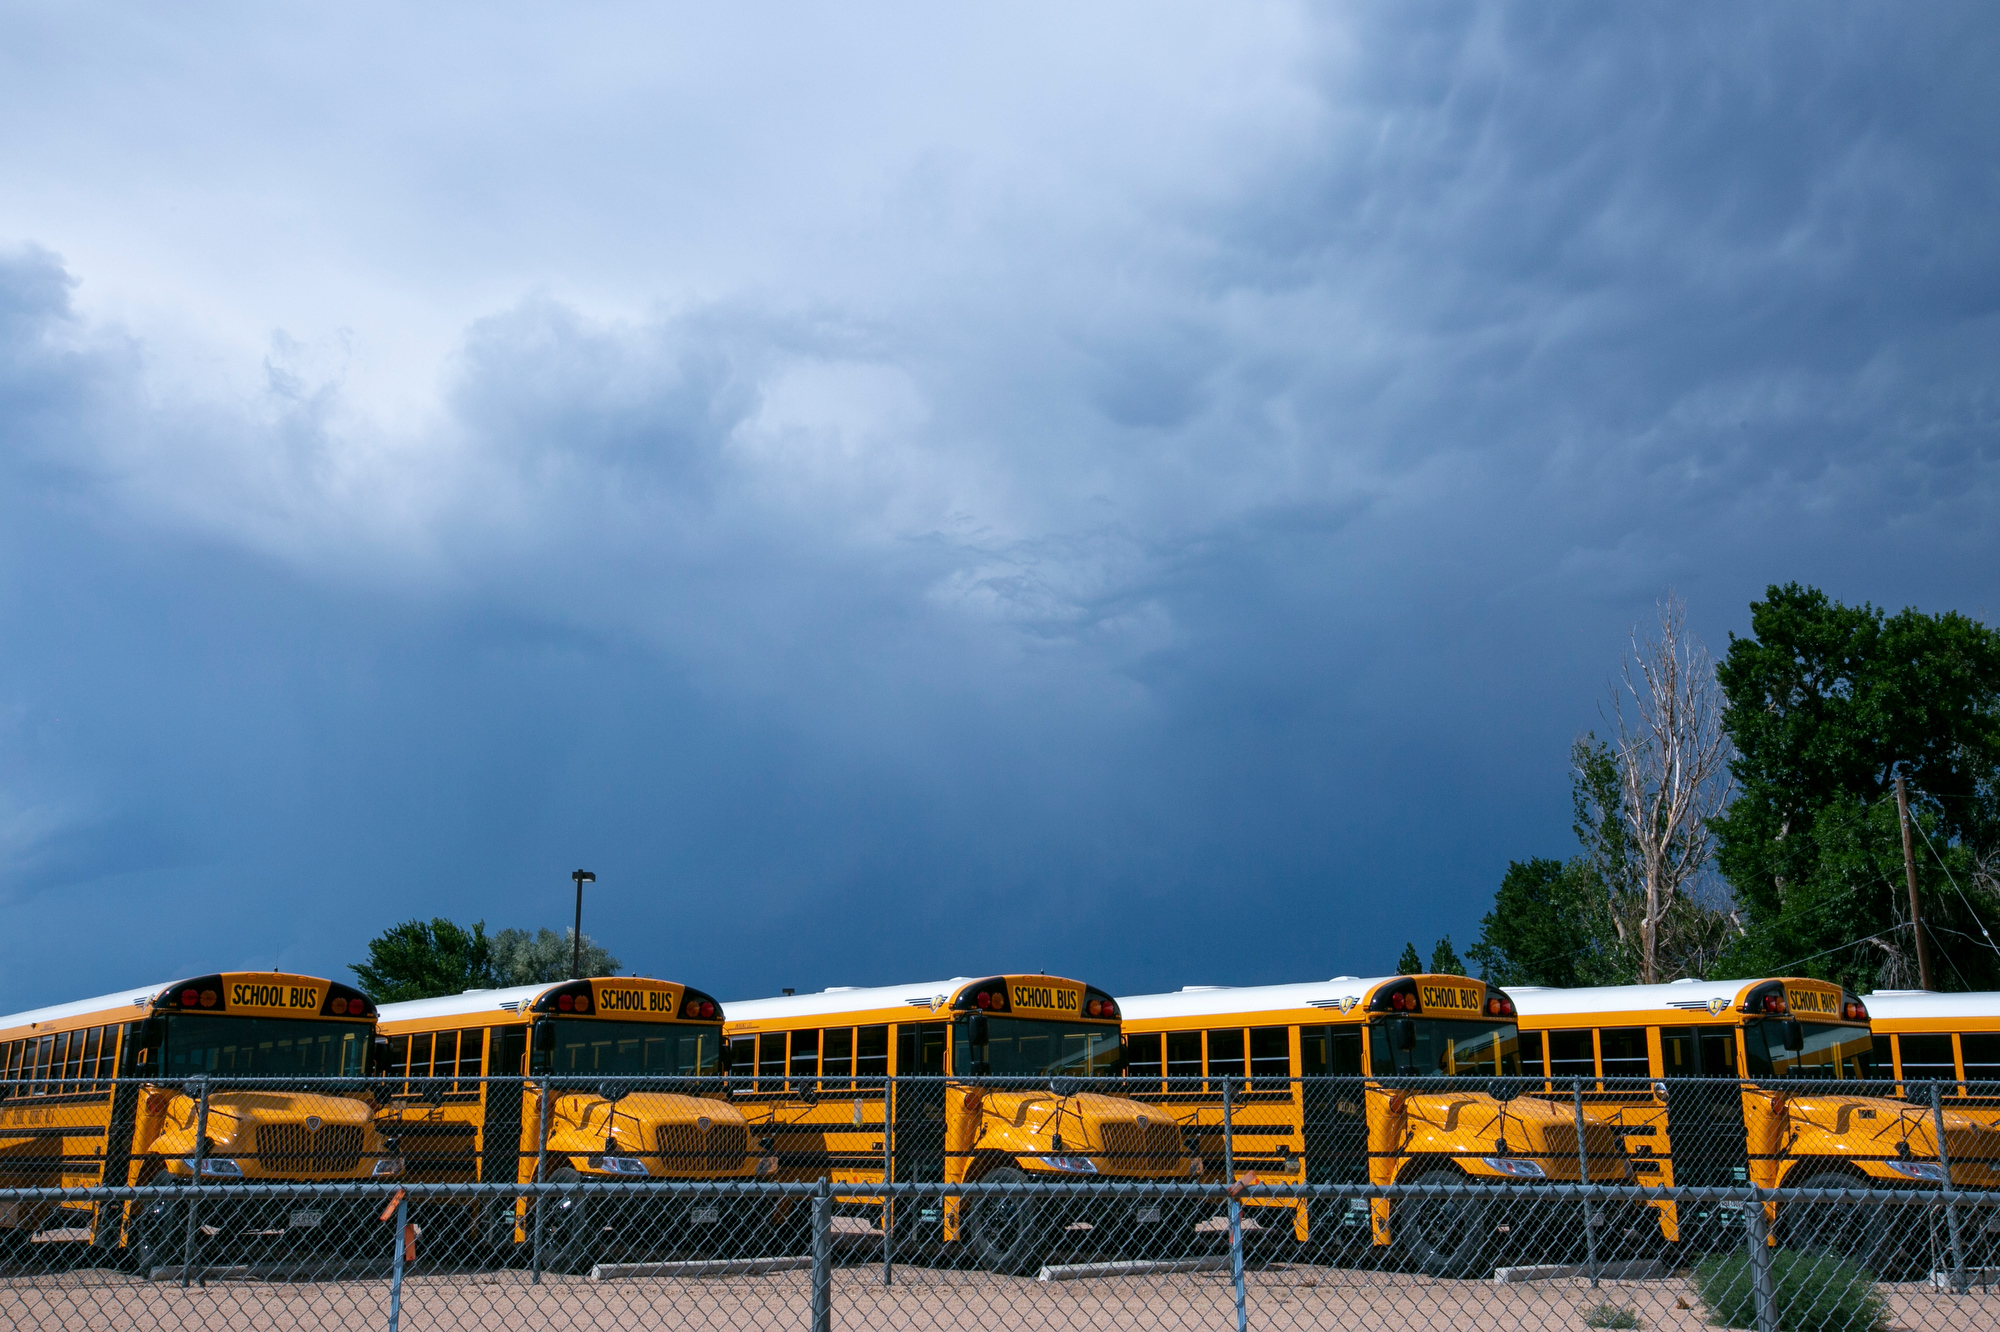 School buses in a parking lot in Greeley.